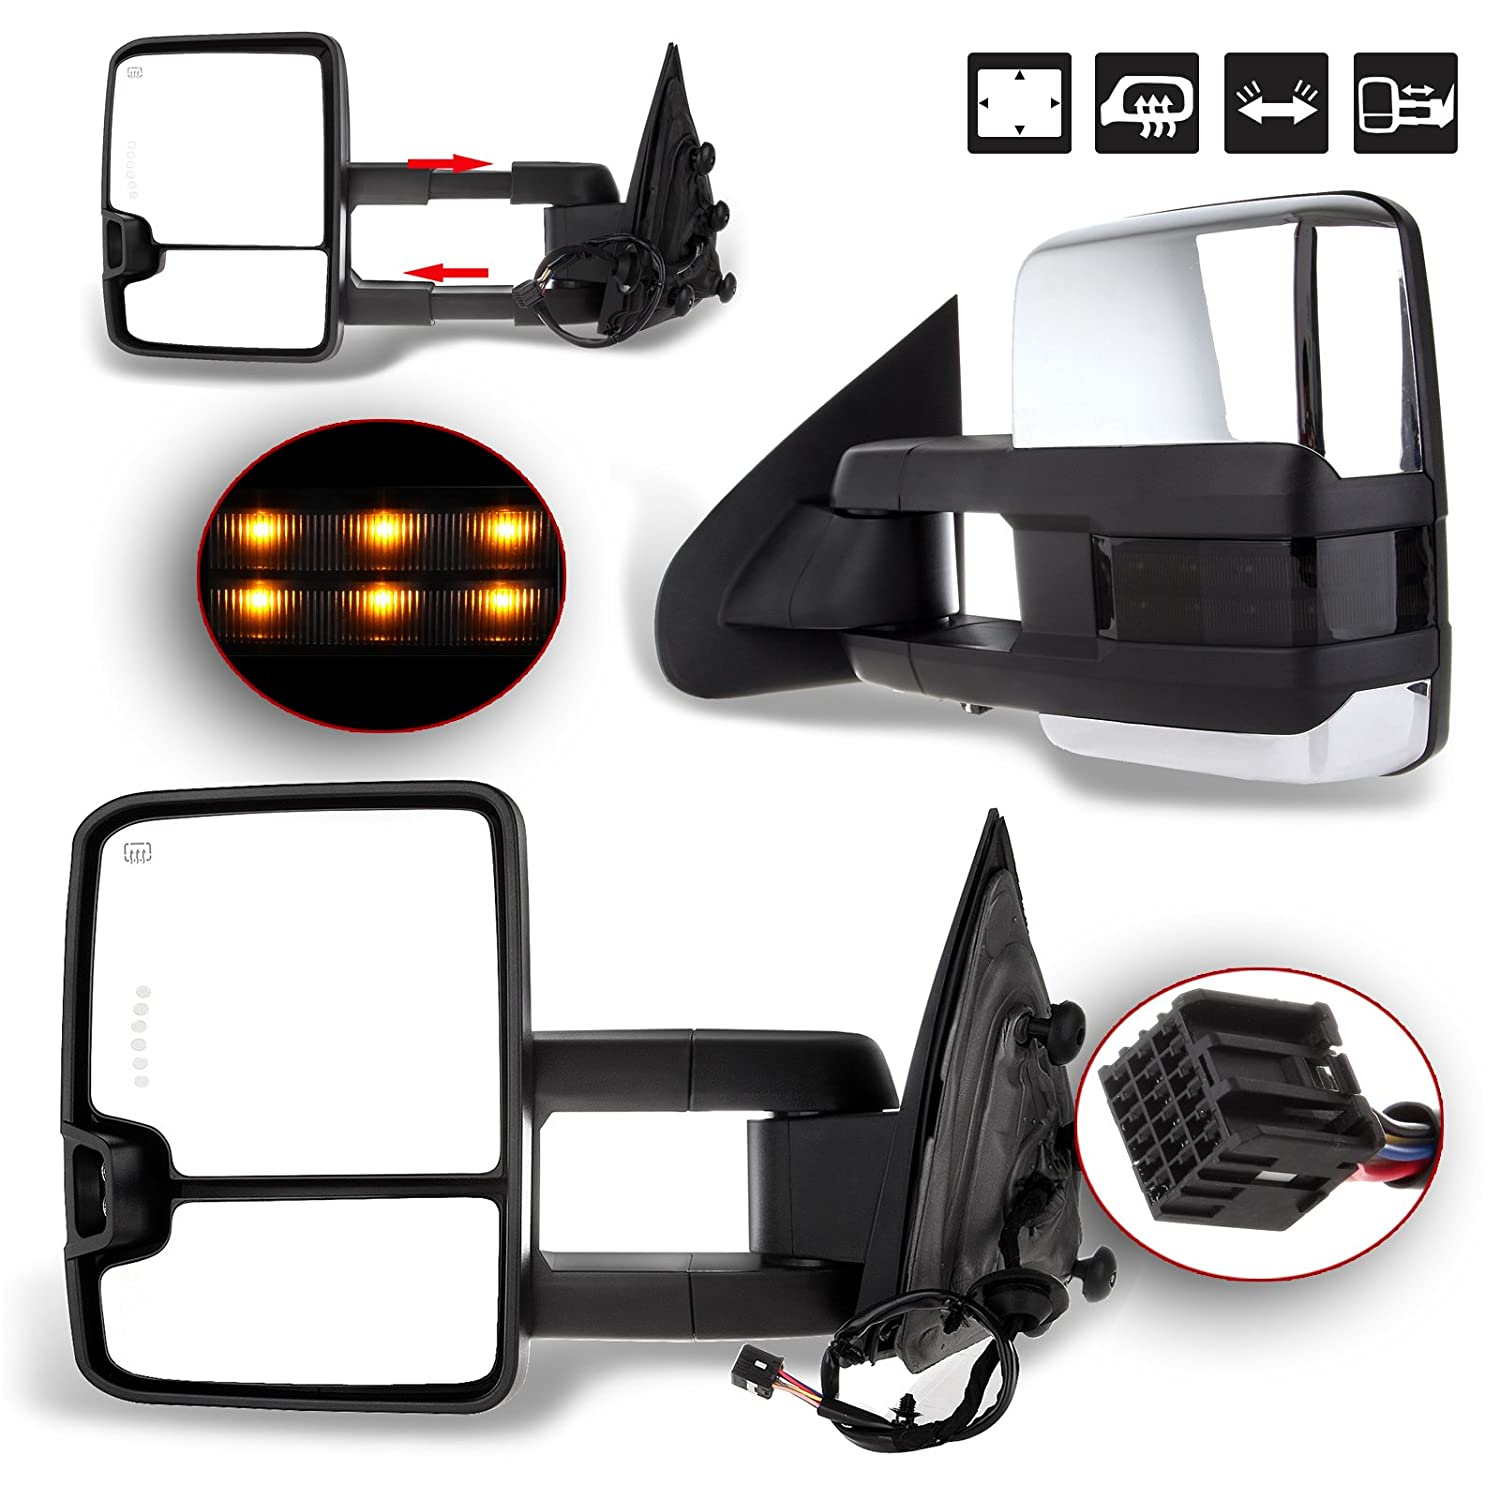 Towing Mirrors for 2003 2004 2005 2006 2007 Silverado Sierra Chevrolet Chevy gmc 1500 2500 3500 HD with Power Glass LED Arrow Turn Signal Light Backup Lamp Heated Extendable Pair Set